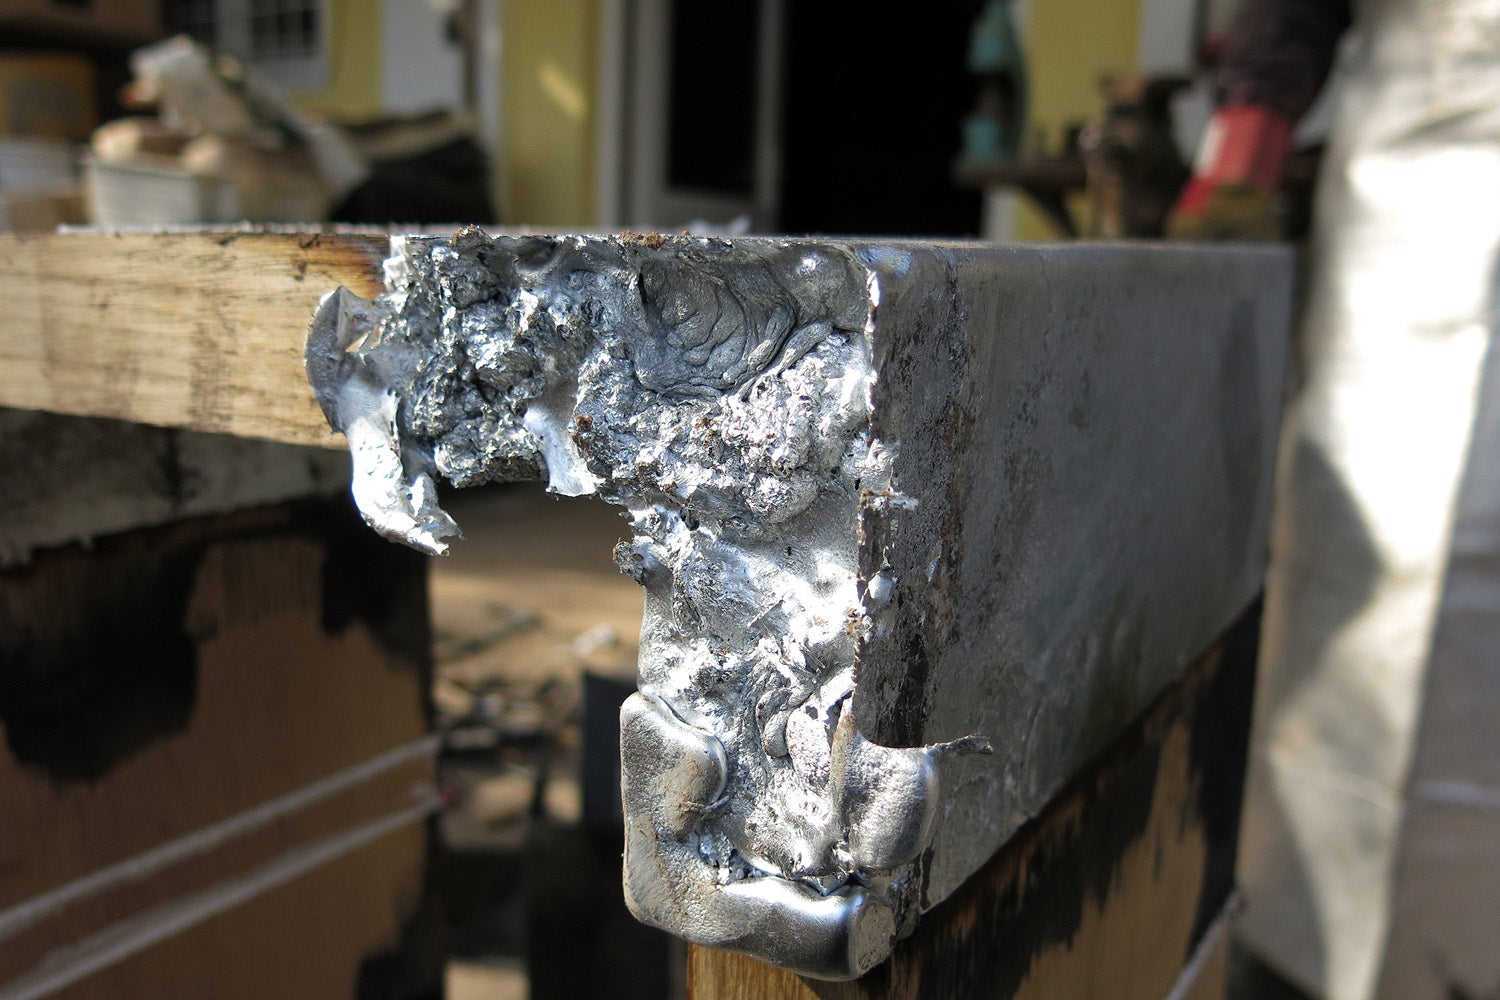 Casting Molten Metal On Wood With A Hungarian Design